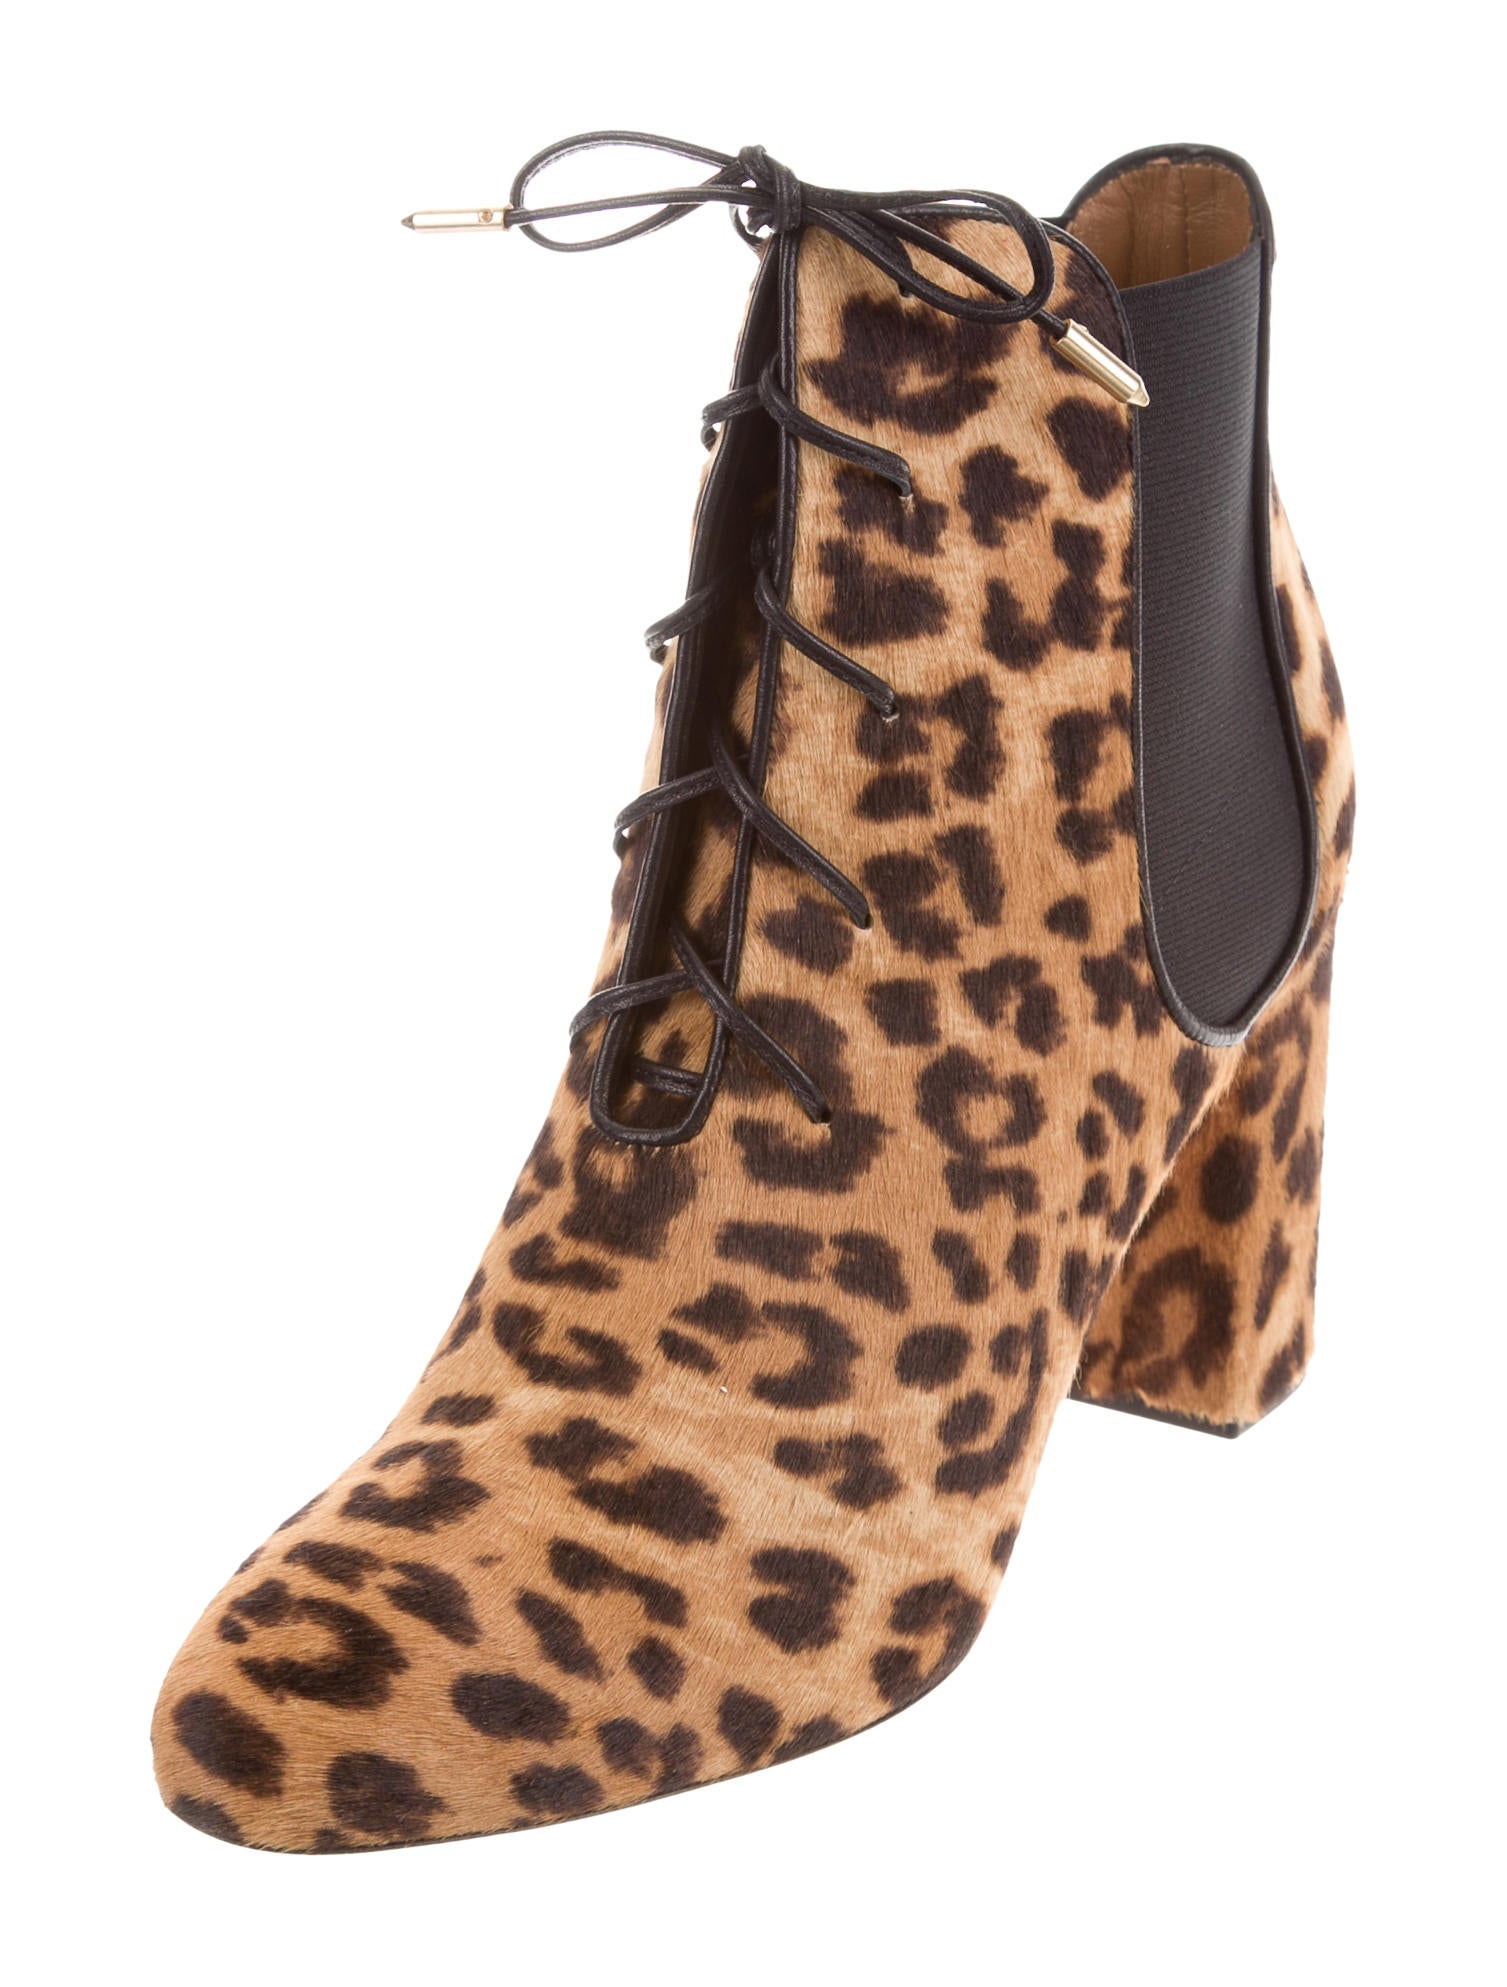 Aquazzura Leopard Victoria Ankle Boots w/ Tags F/W 2016 with paypal cheap price YyoKZreaz